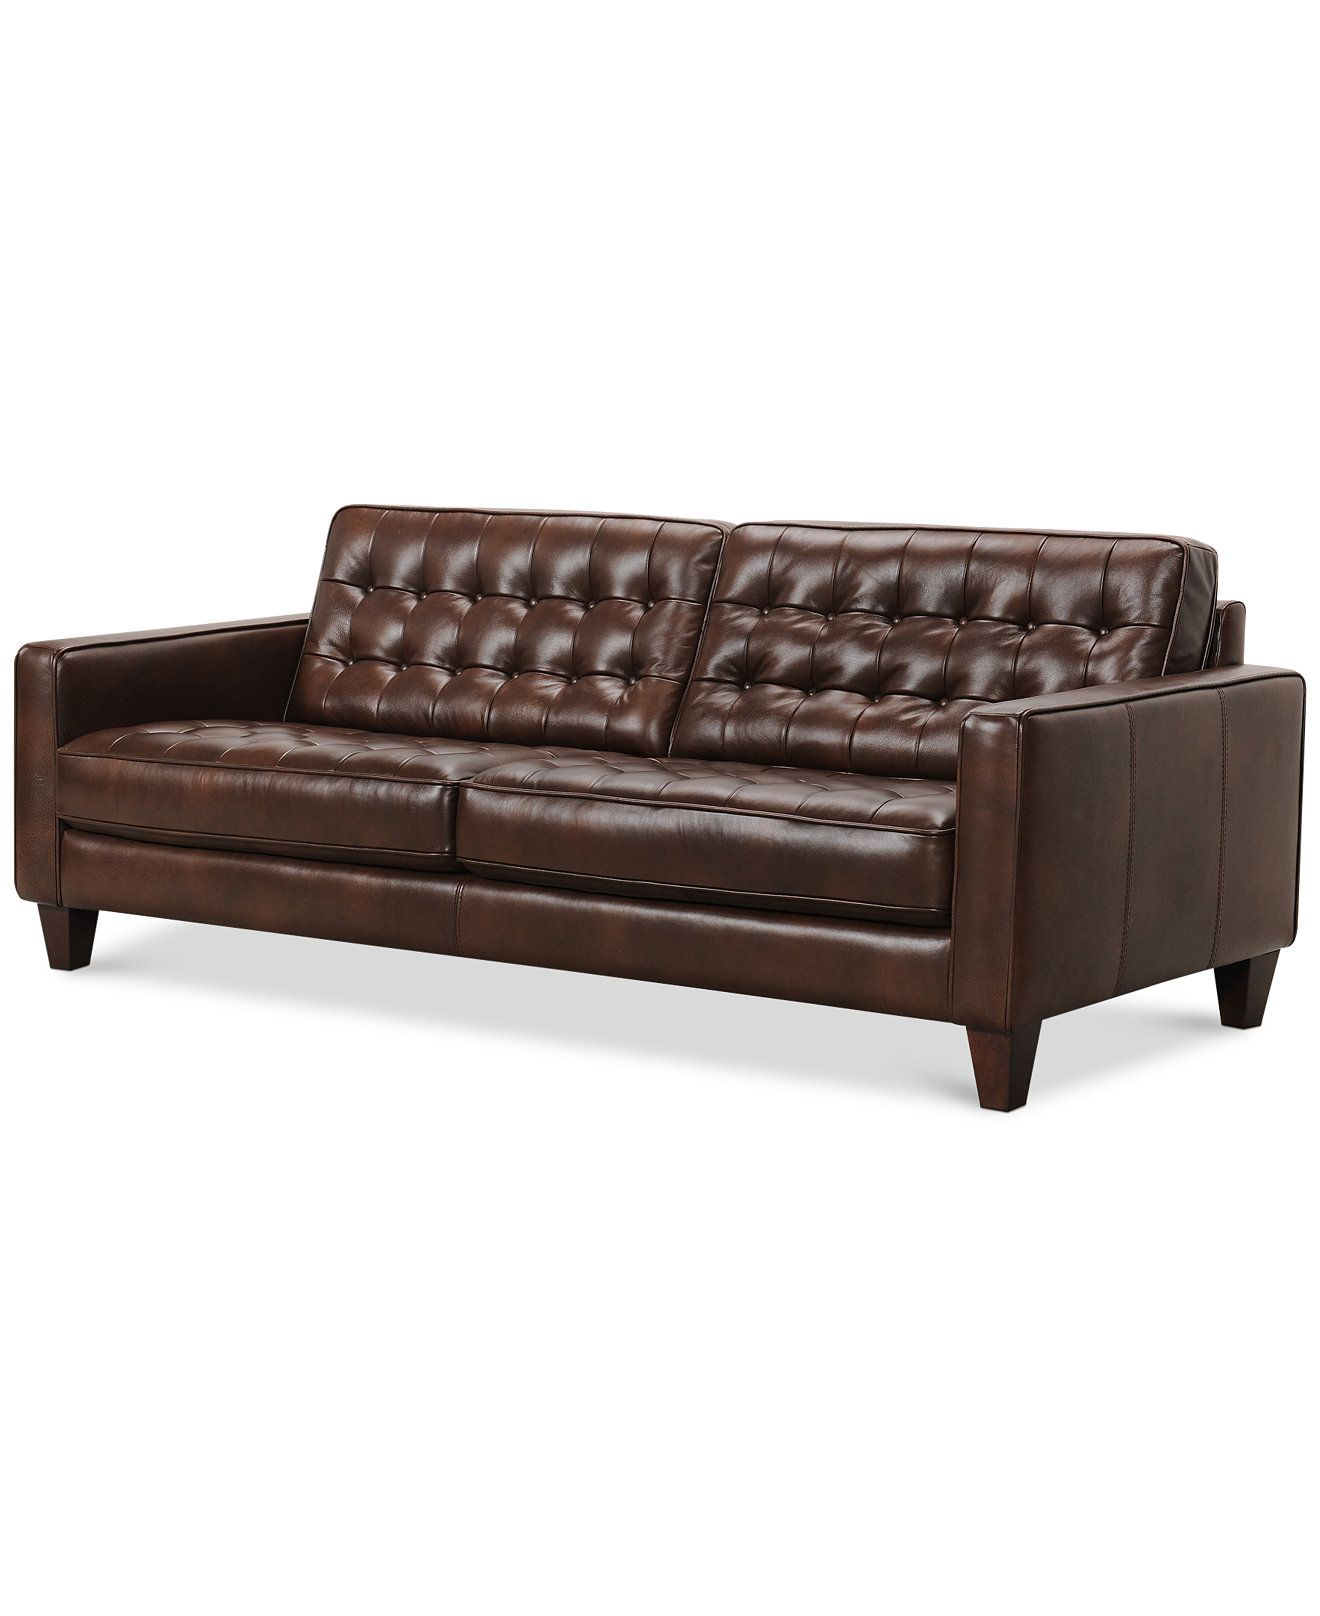 Sofa Leather Workshop: Bray Button Tufted Leather Sofa